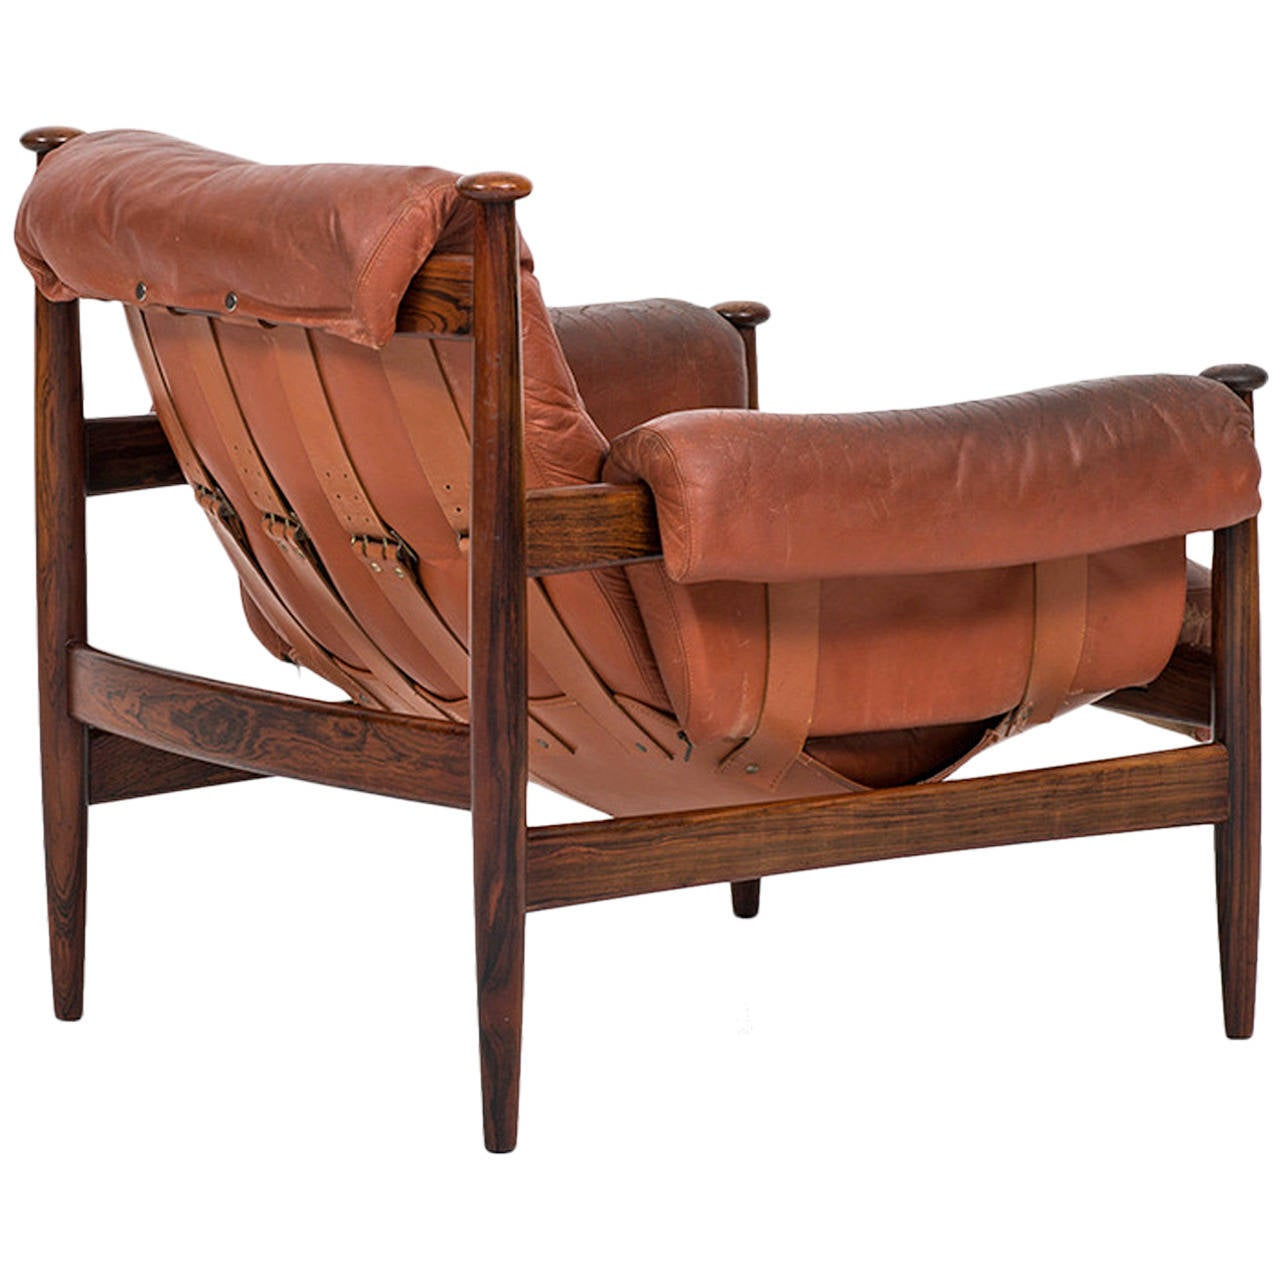 Safari Chair Safari Chair In Rosewood And Red Leather By Ire Möbler In